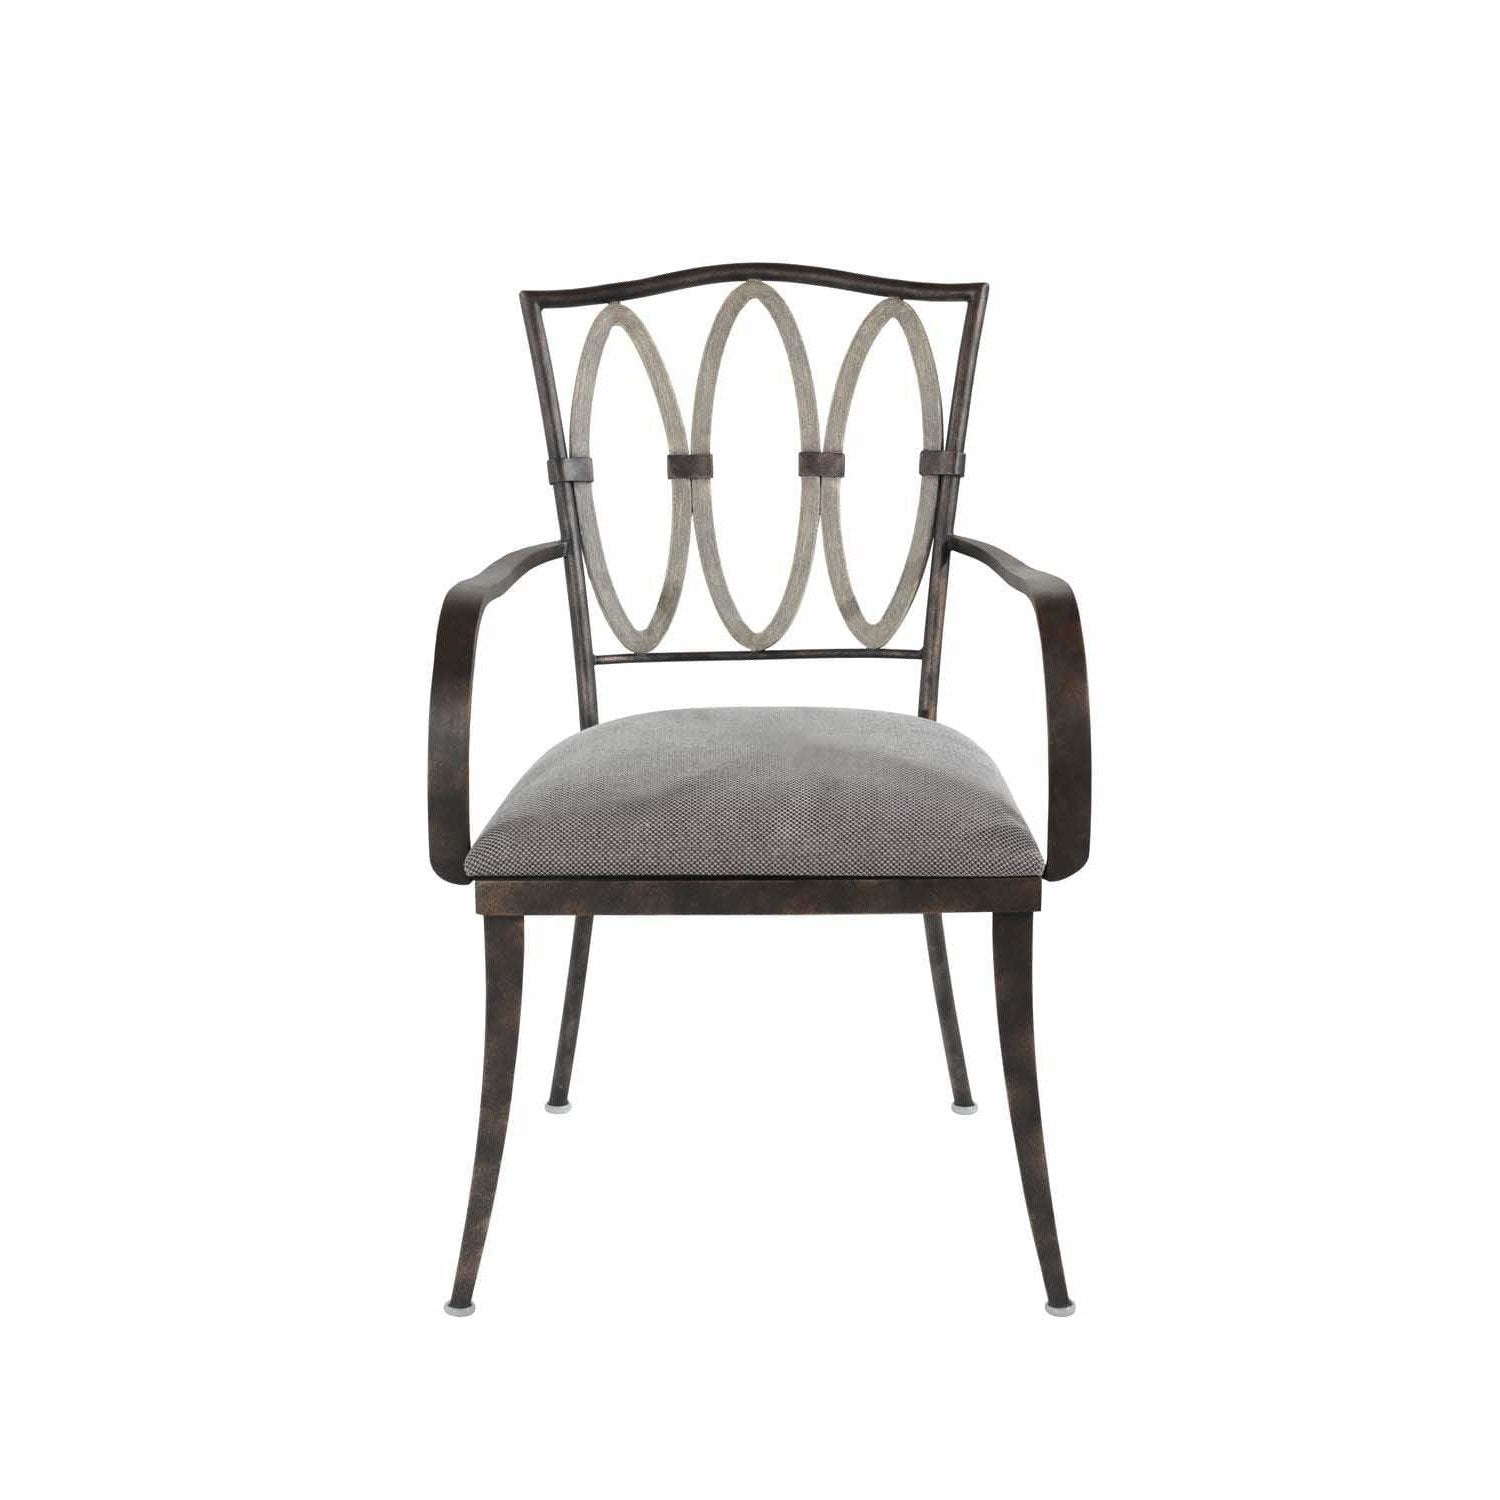 Kalco Lighting Chairs Florence Gold Belmont Dining Arm Chair By Kalco Lighting 800402